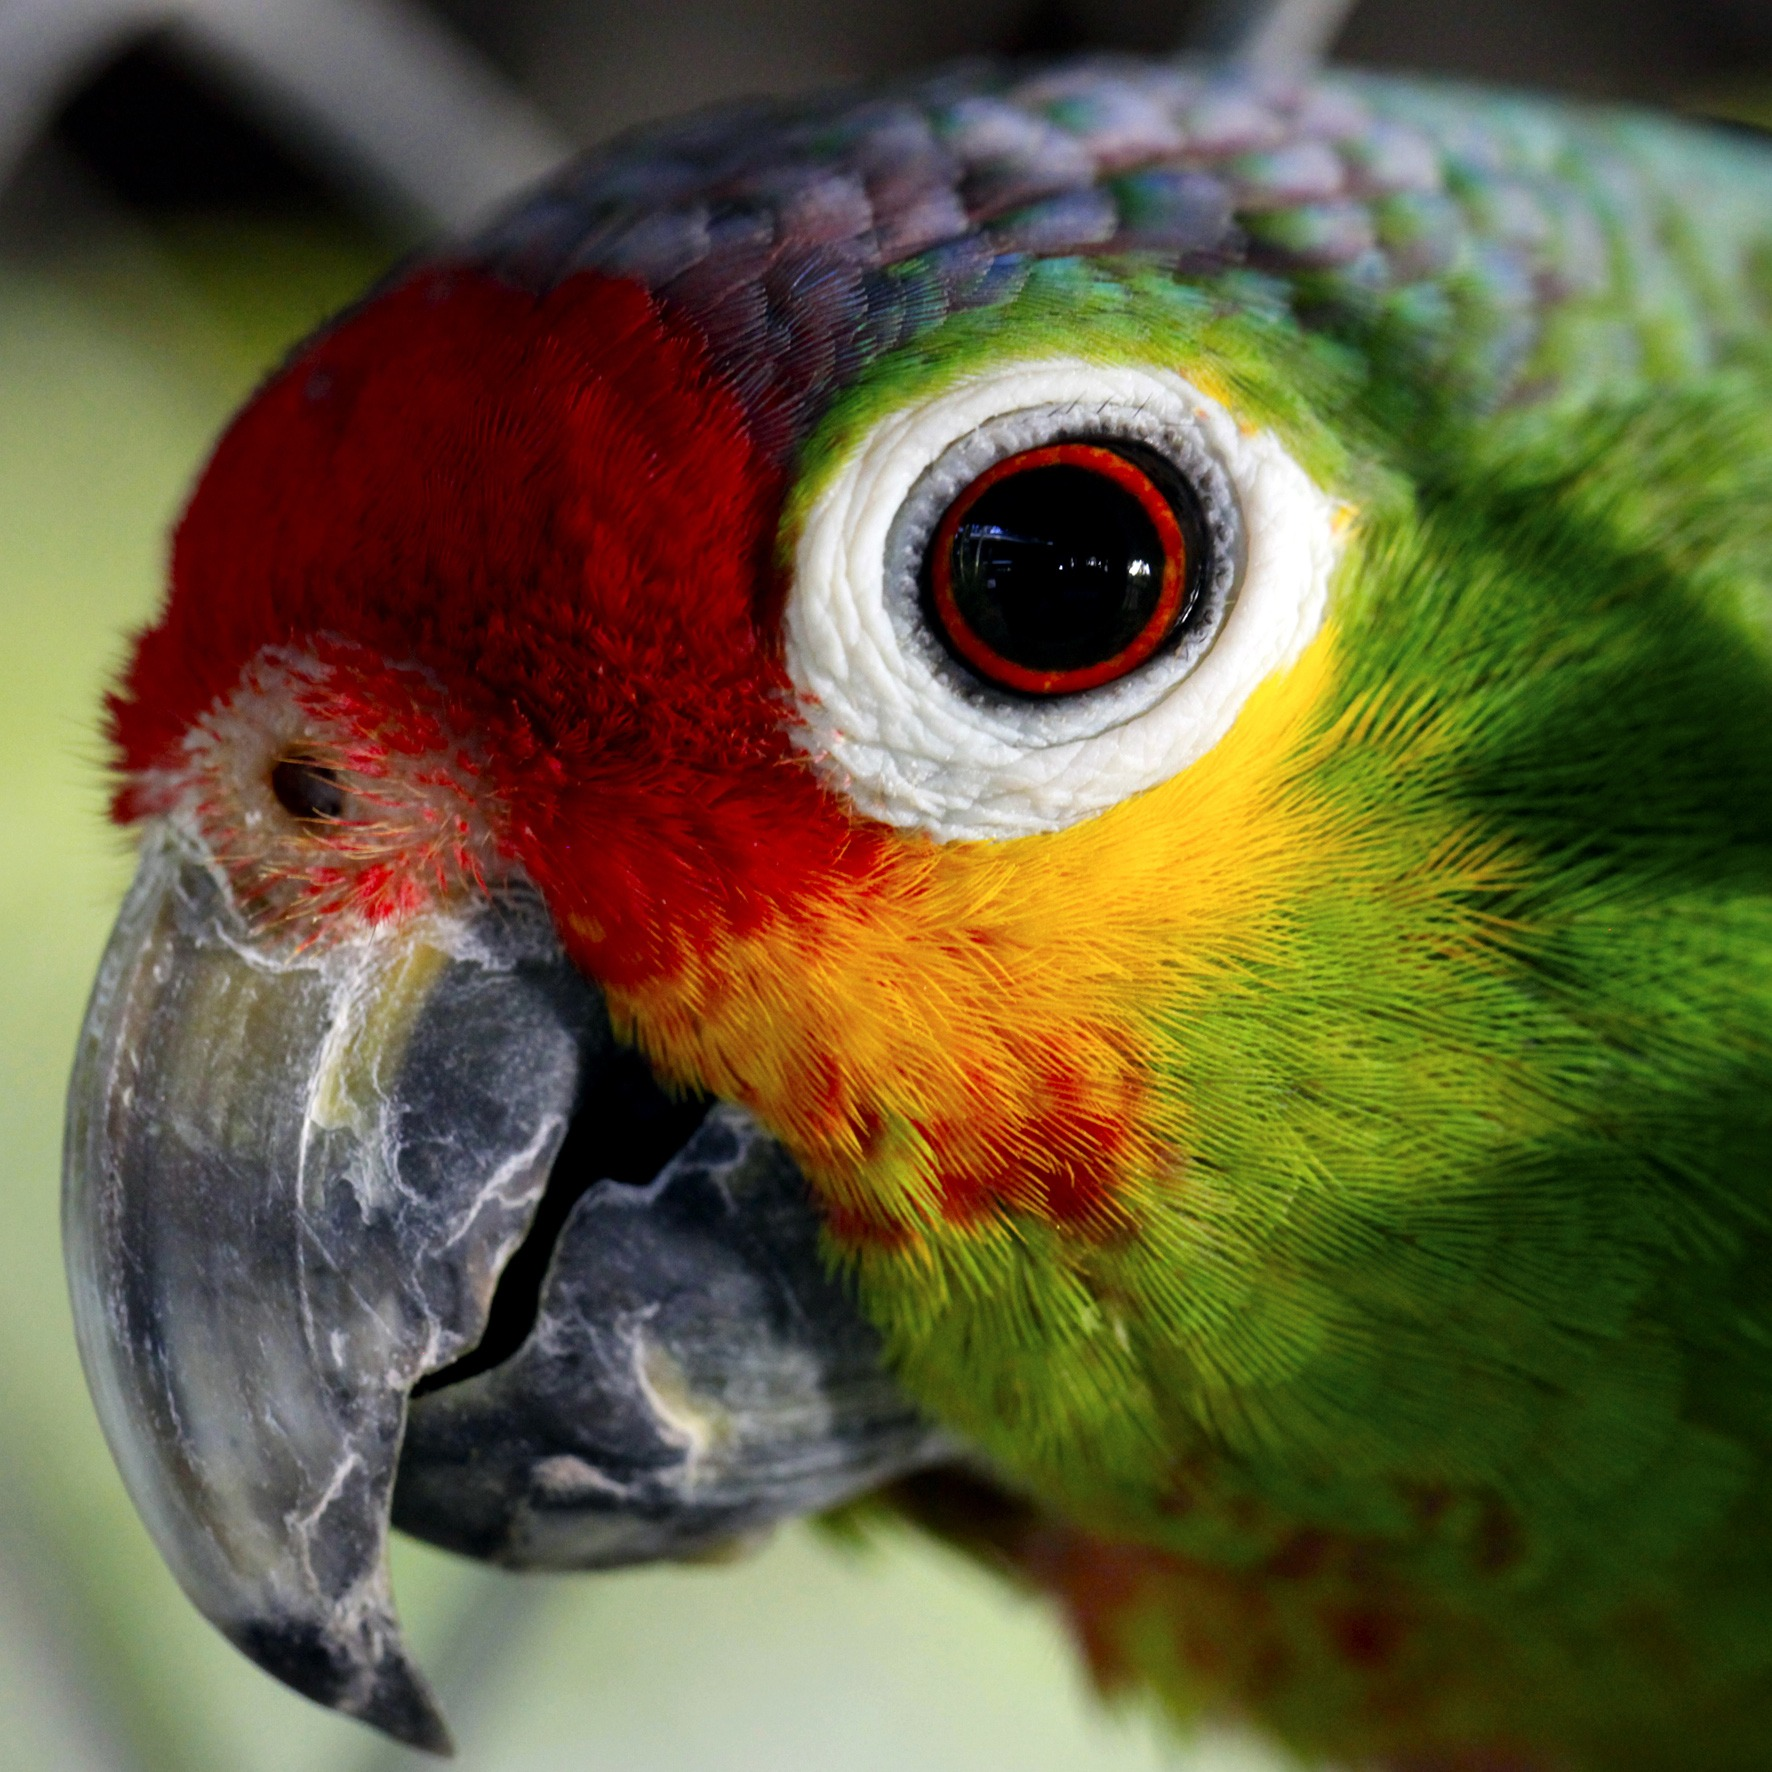 close up photo of green red and yellow bird · free stock photo